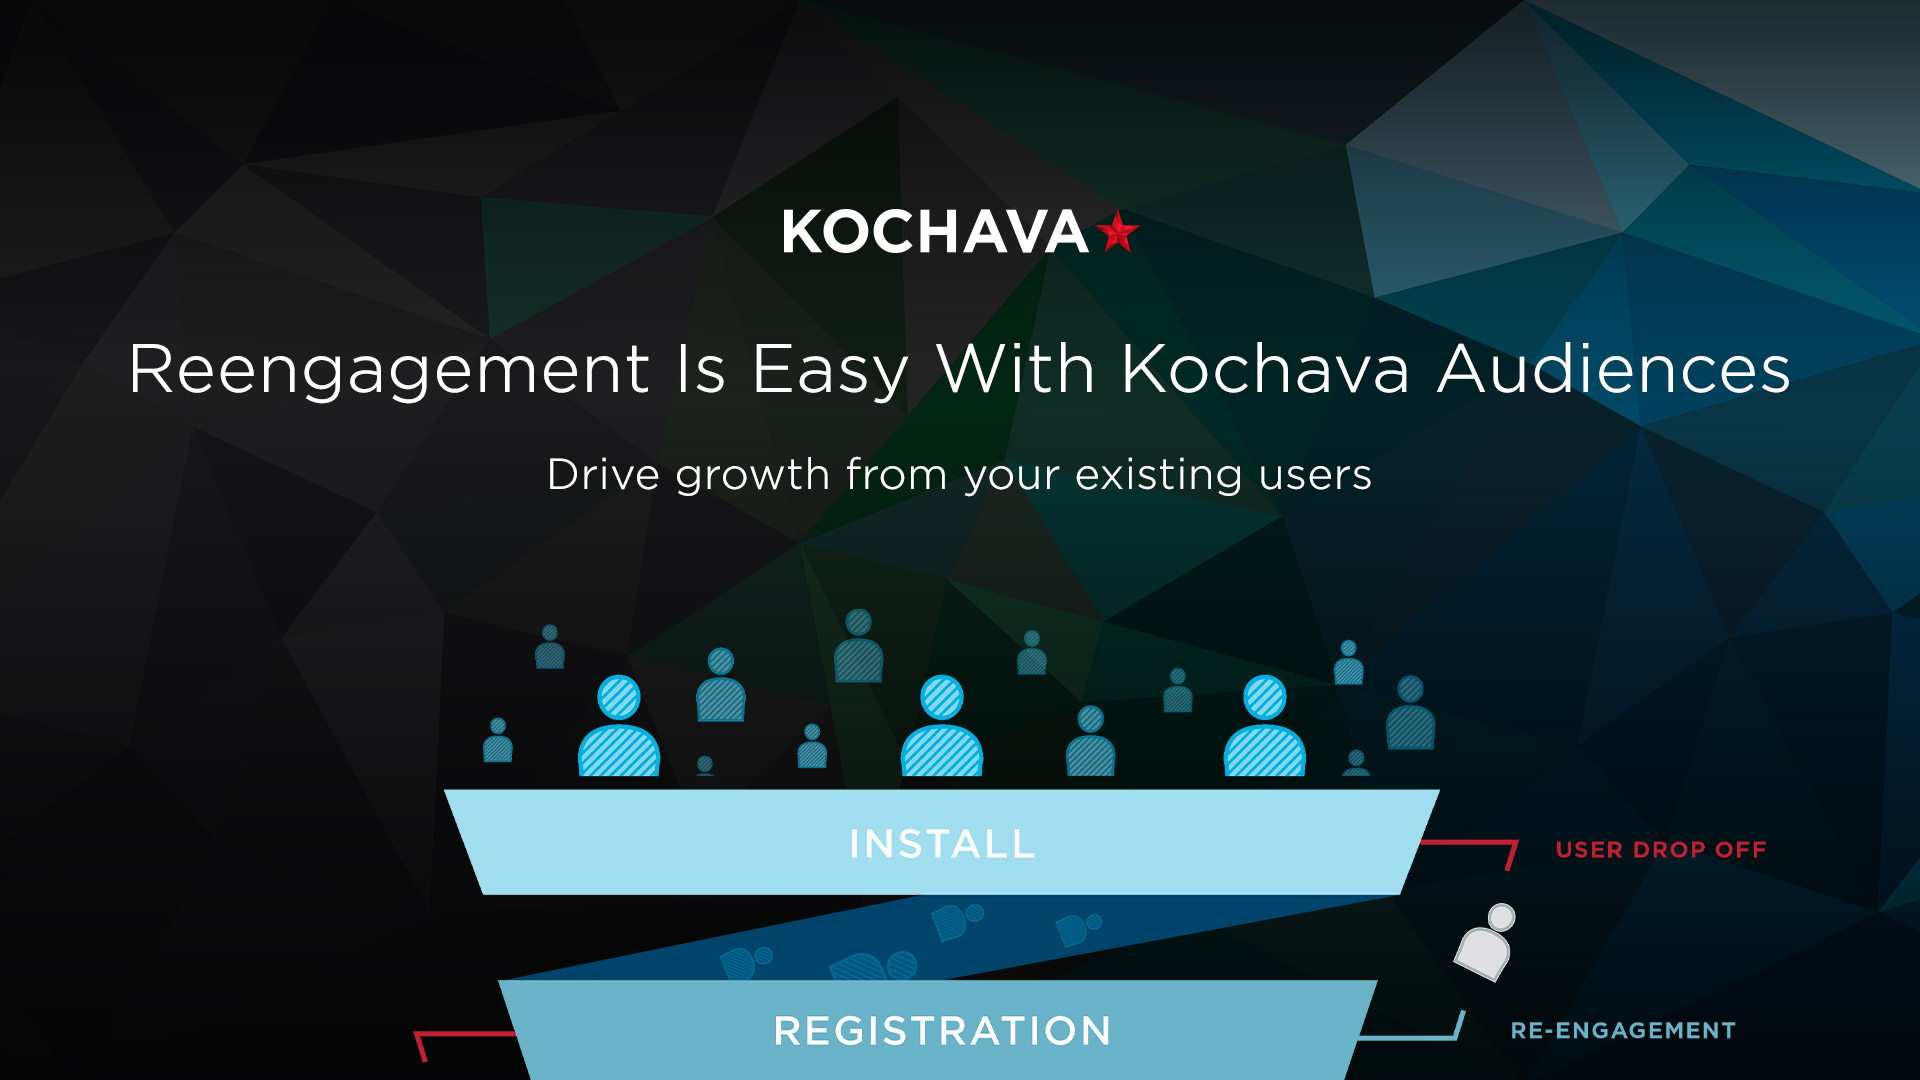 Reengagement is easy with Kochava Audiences